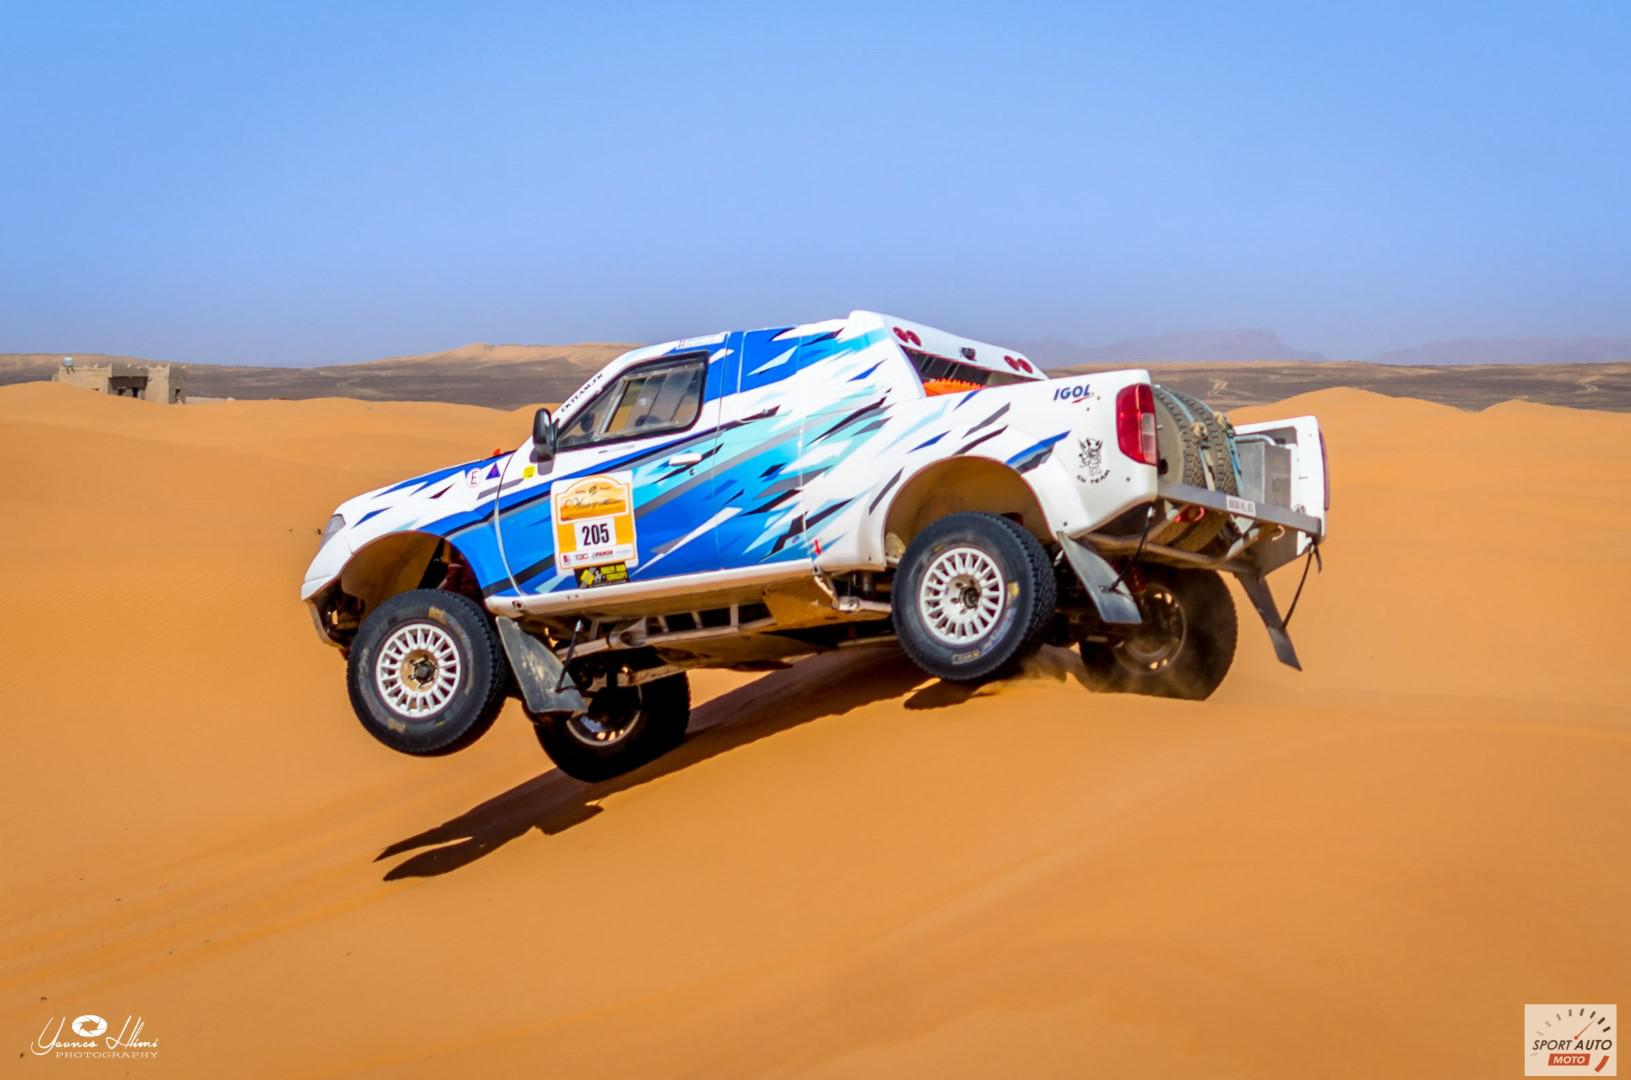 rallye-hearts-of-morrocco-2017-besson-remporte-la-premiere-edition-449-15.jpg